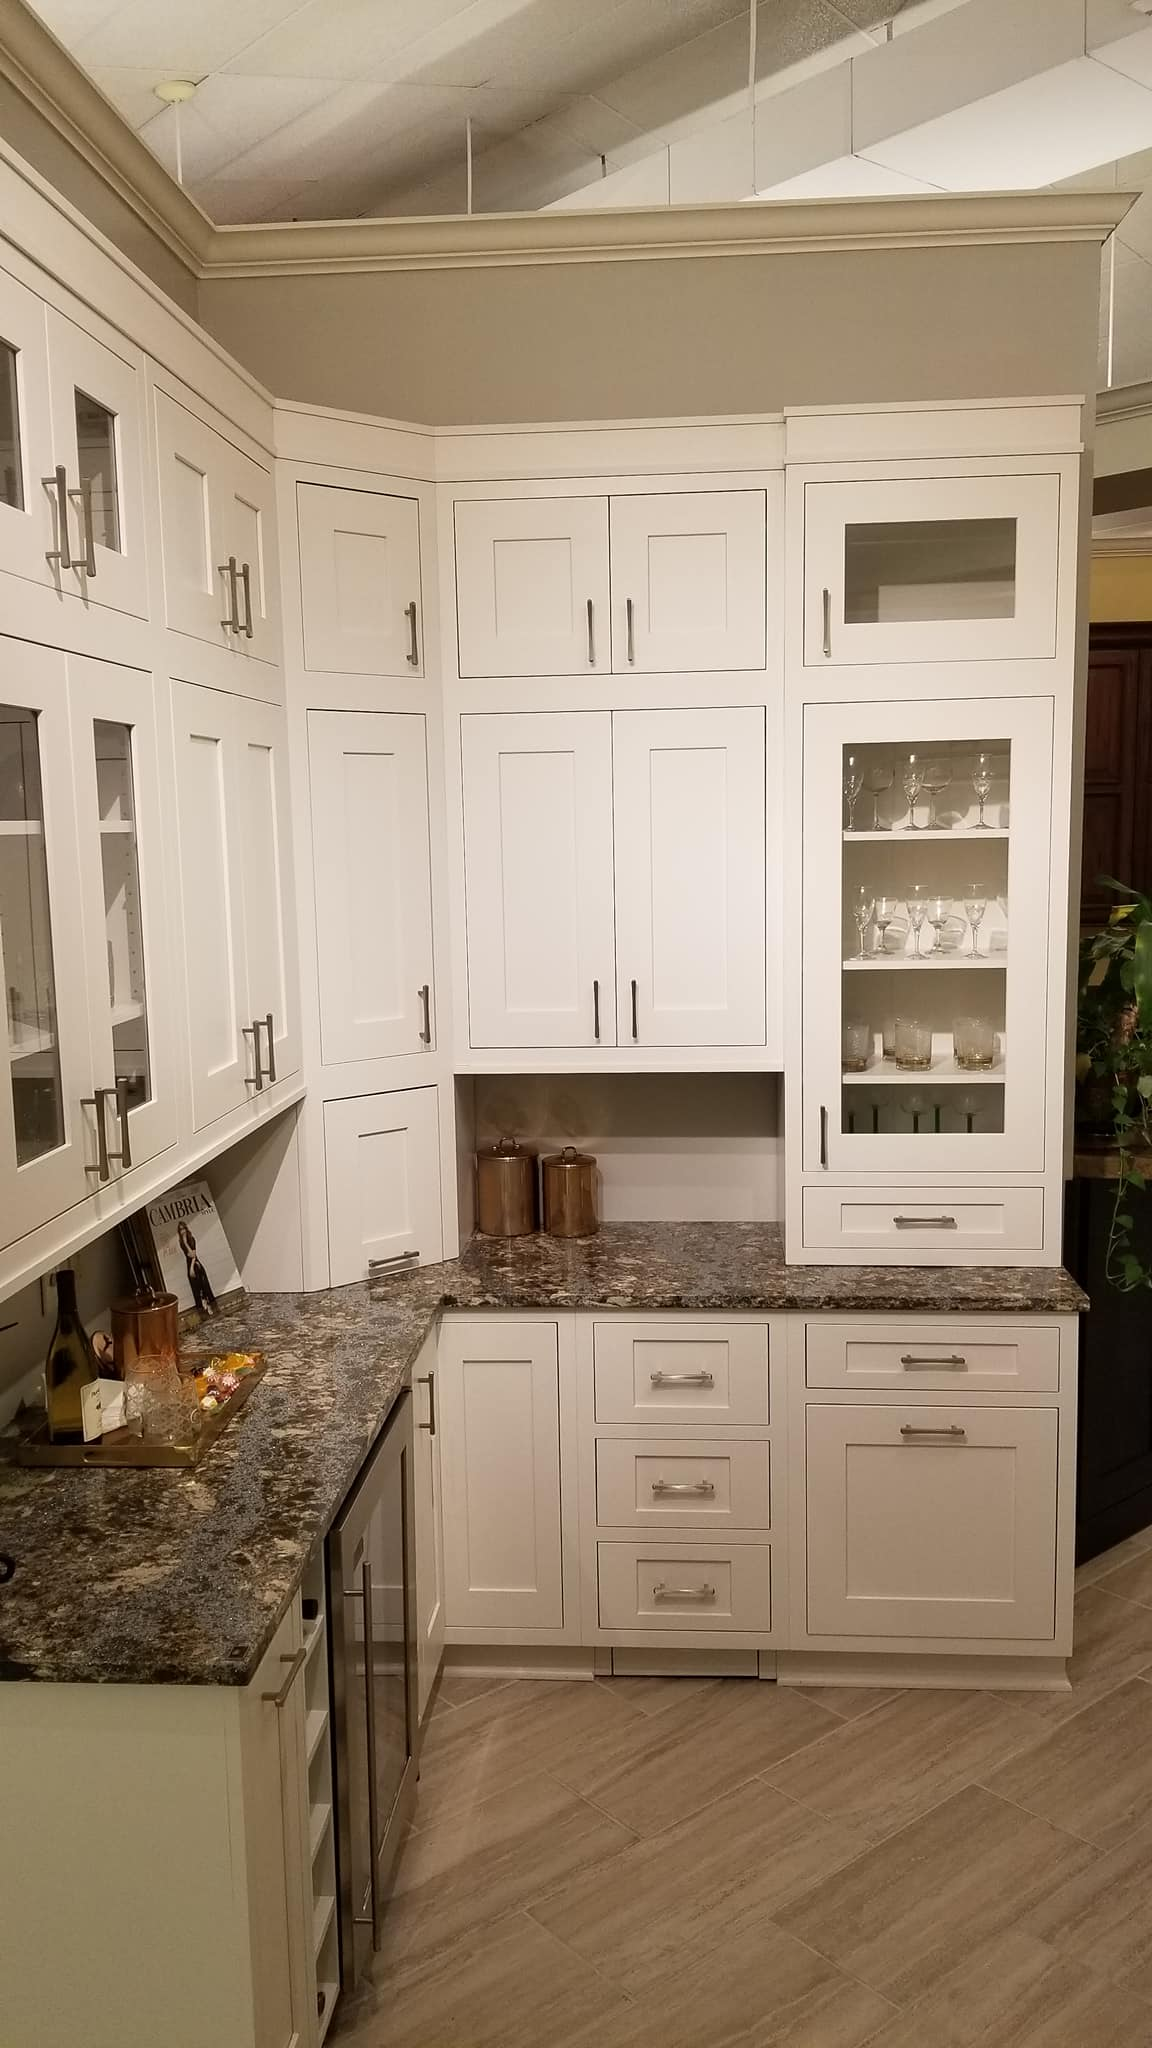 showroom cabinets display | Marchand Creative Kitchens Cabinets New Orleans Metairie Mandeville LA